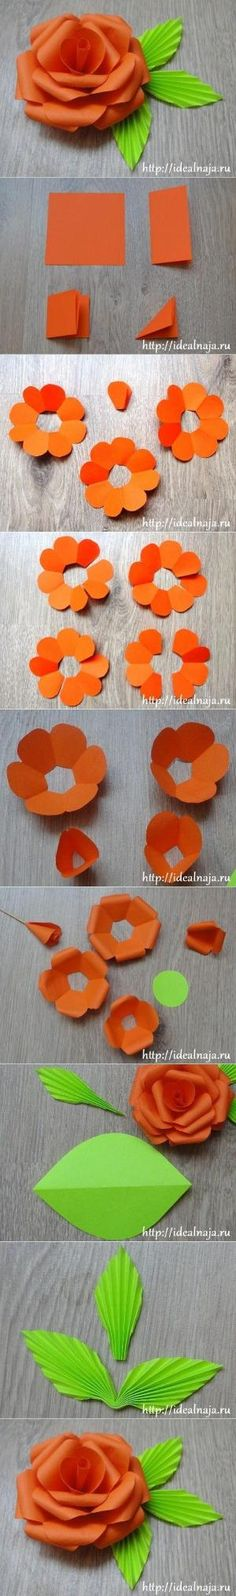 Paper rose diy by Senka